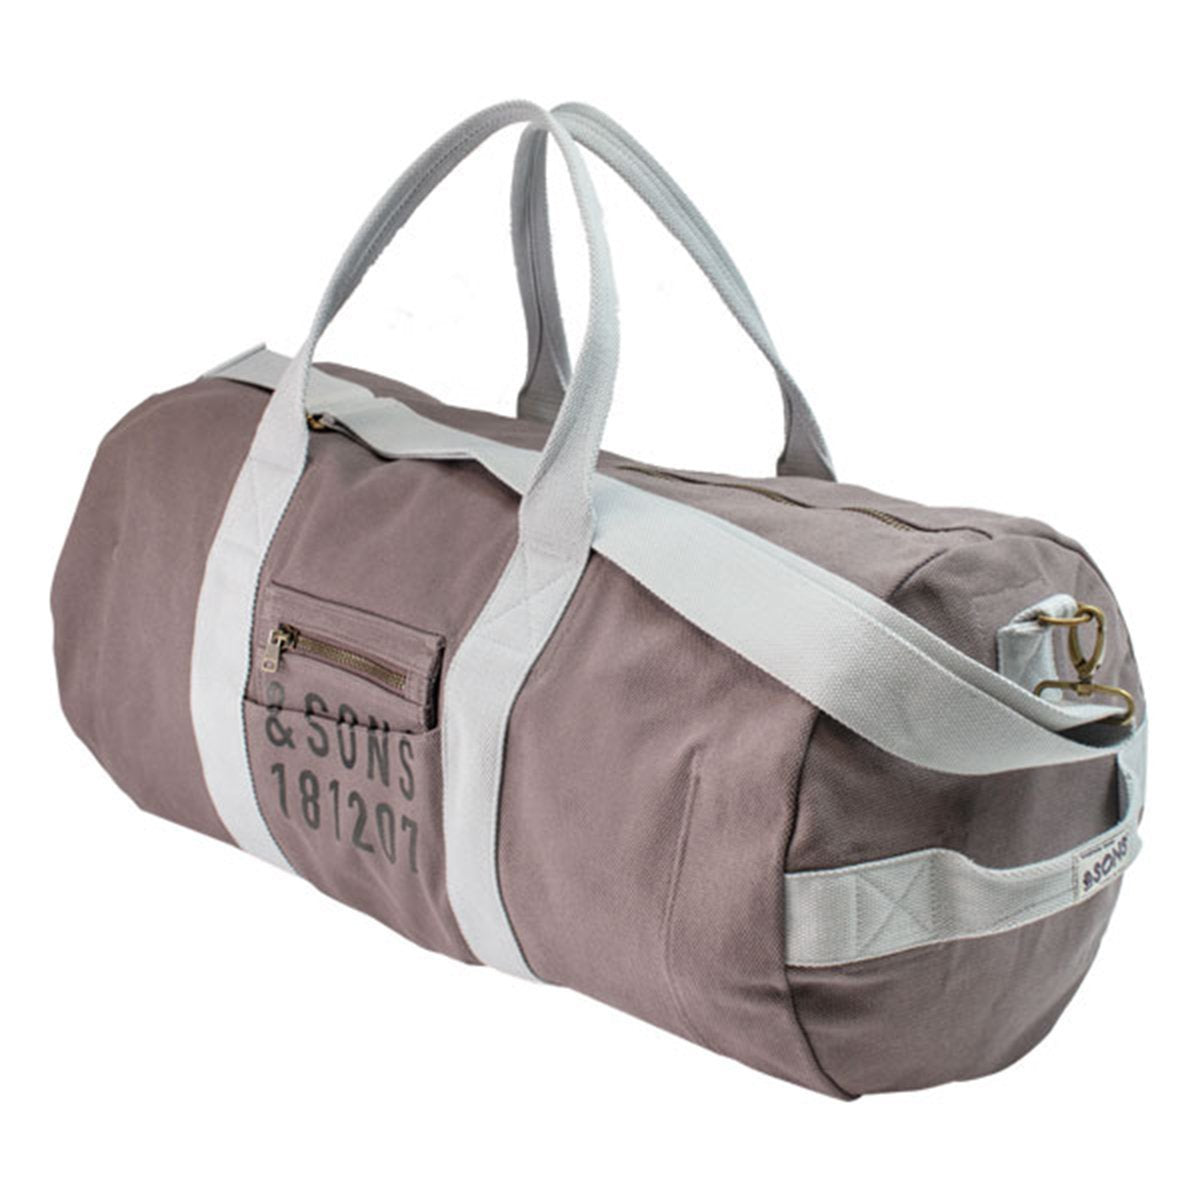 &SONS Great Escape Bag » Steve McQueen's Duffle - 100% Cotton